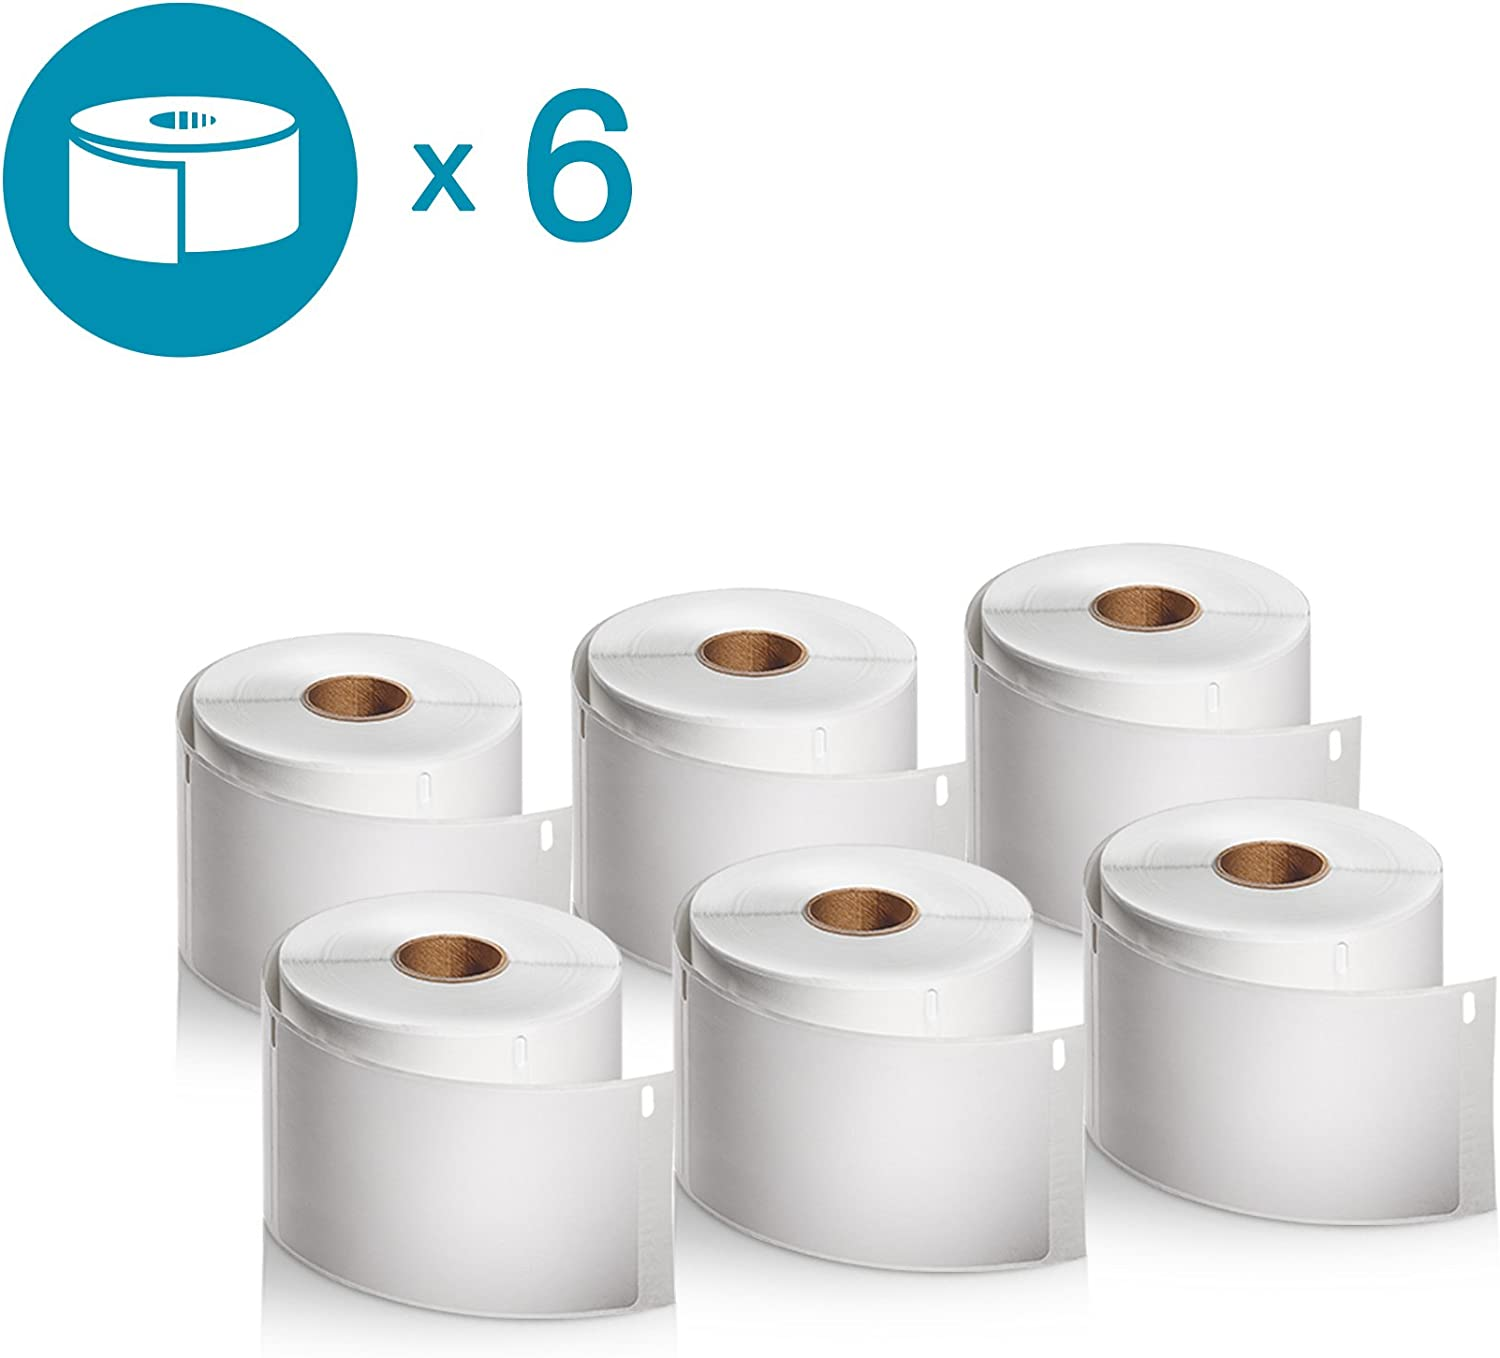 DYMO LW 30256 BLUE 6 Rolls of 300 Large Shipping Labels FAST SHIP ! SIX